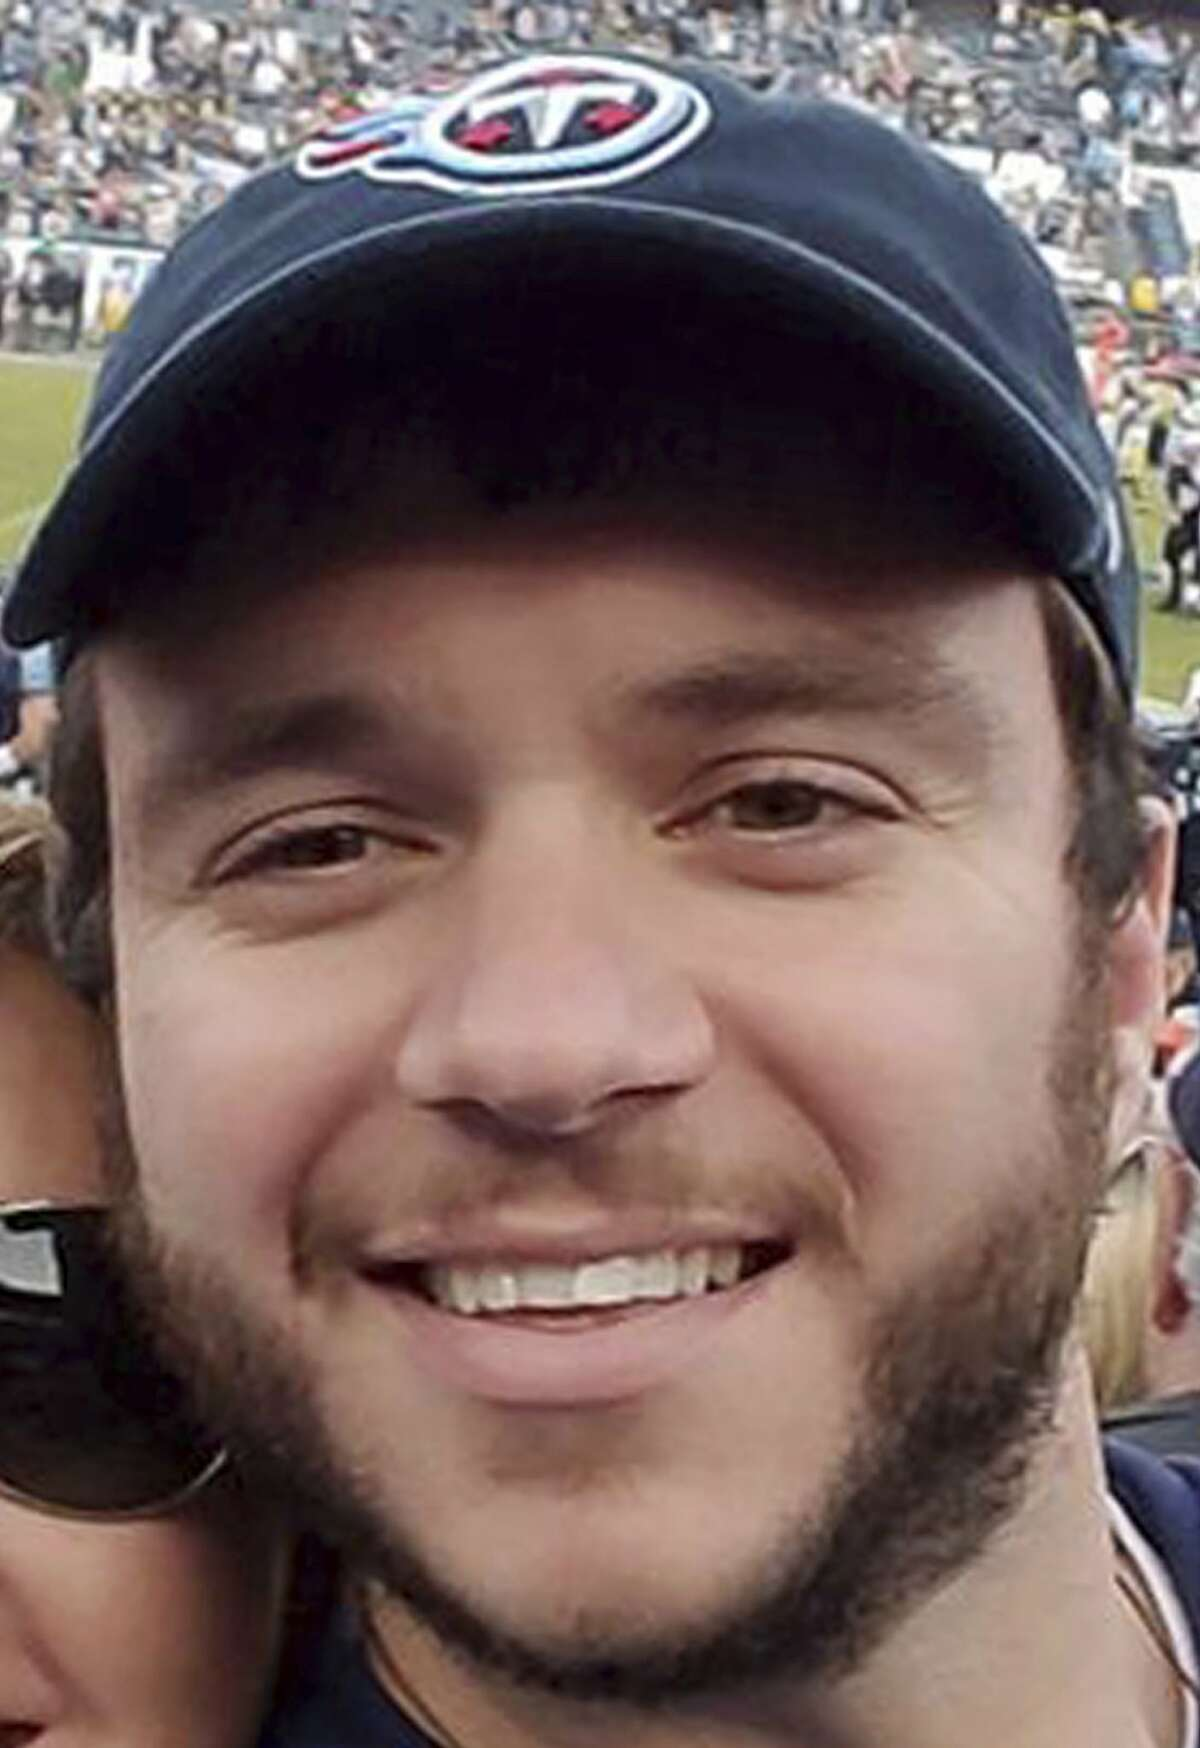 This undated photo shows Sonny Melton, one of the people killed in Las Vegas after a gunman opened fire on Sunday, Oct. 1, 2017, at a country music festival.